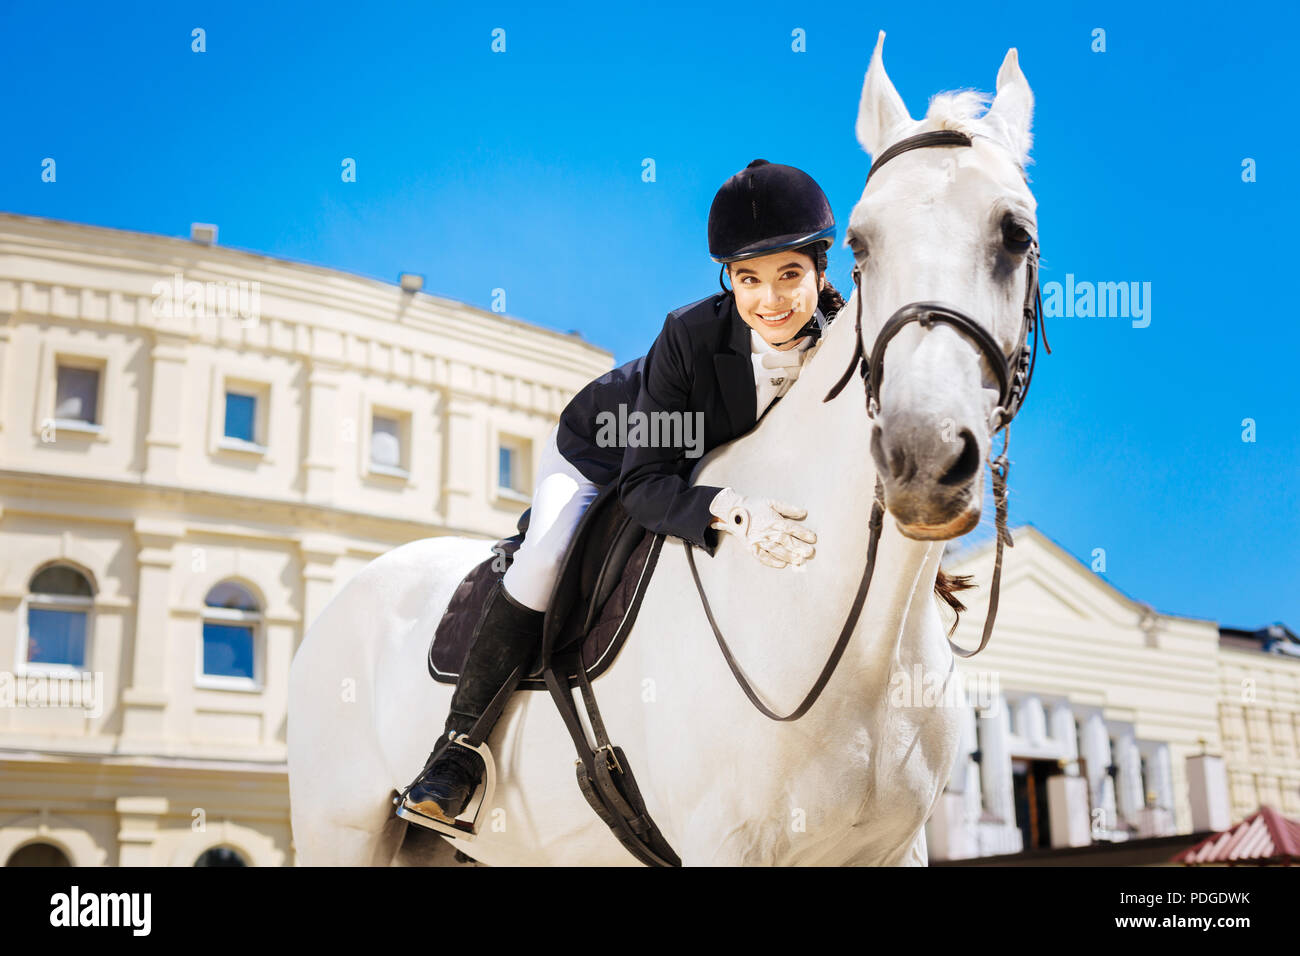 Black-eyed beaming female rider leaning on her devoted white horse - Stock Image